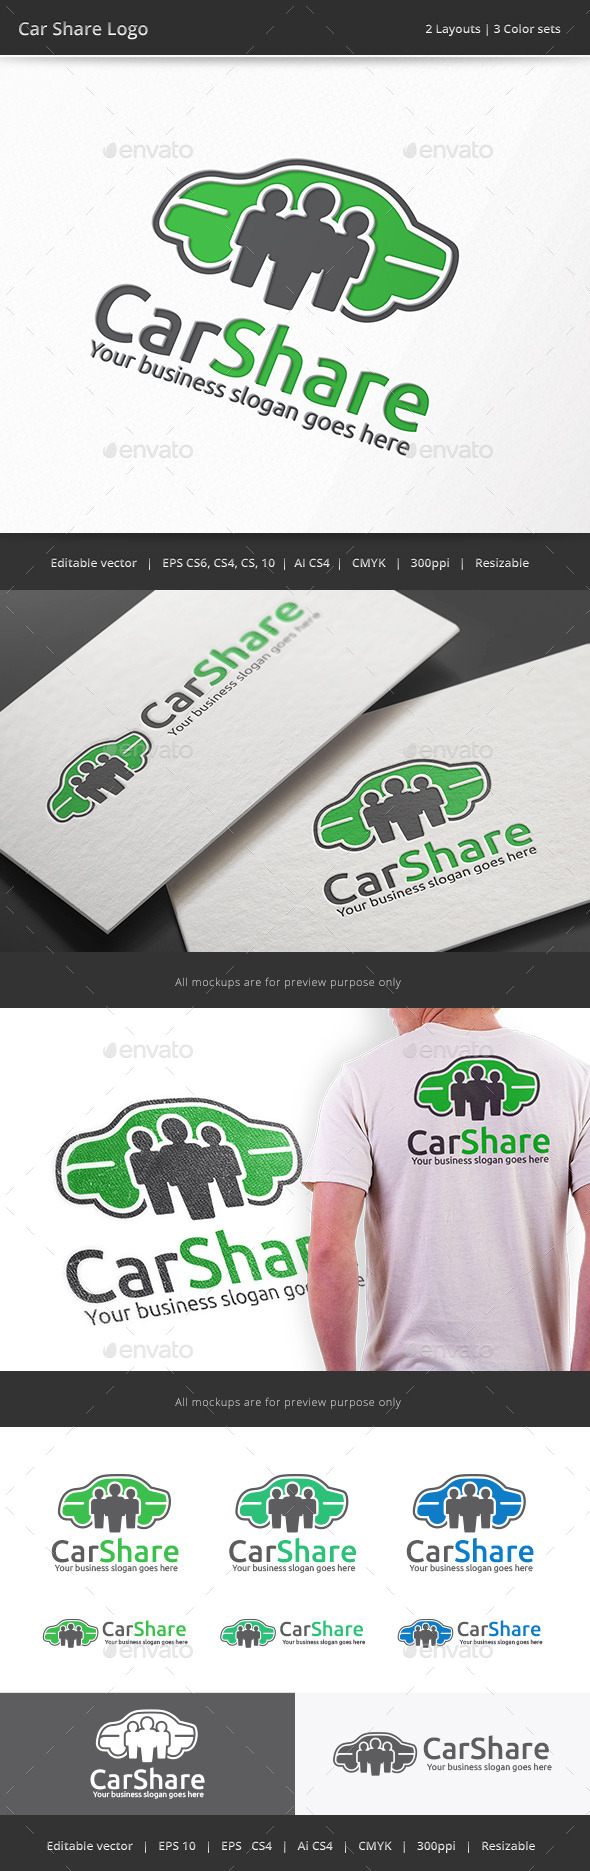 Car Share Logo